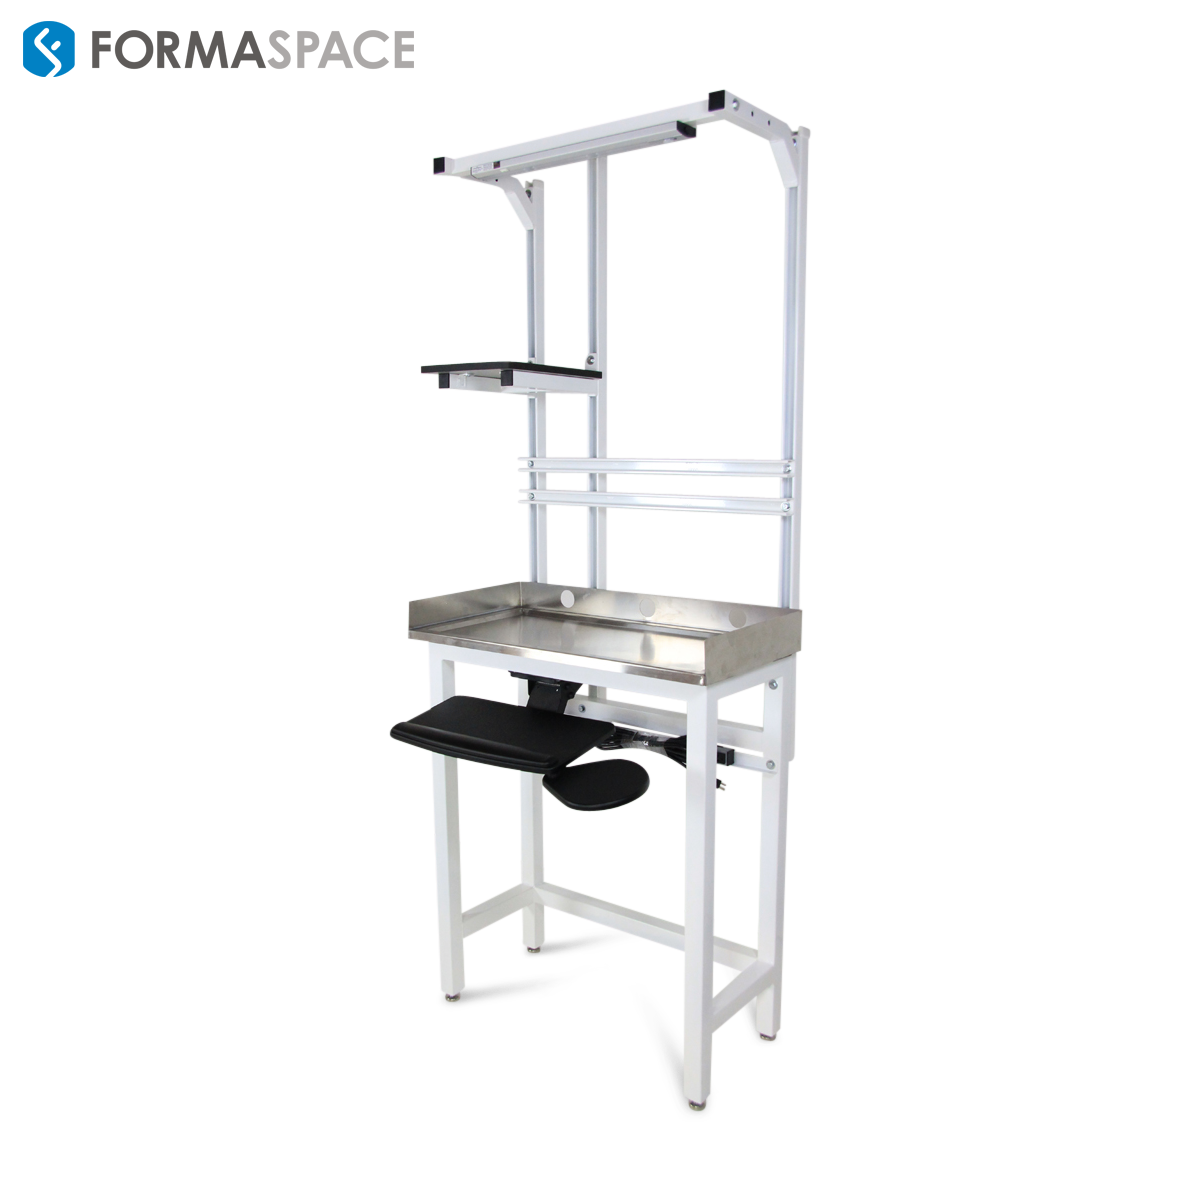 pharmaceutical packing station suited for sterilization